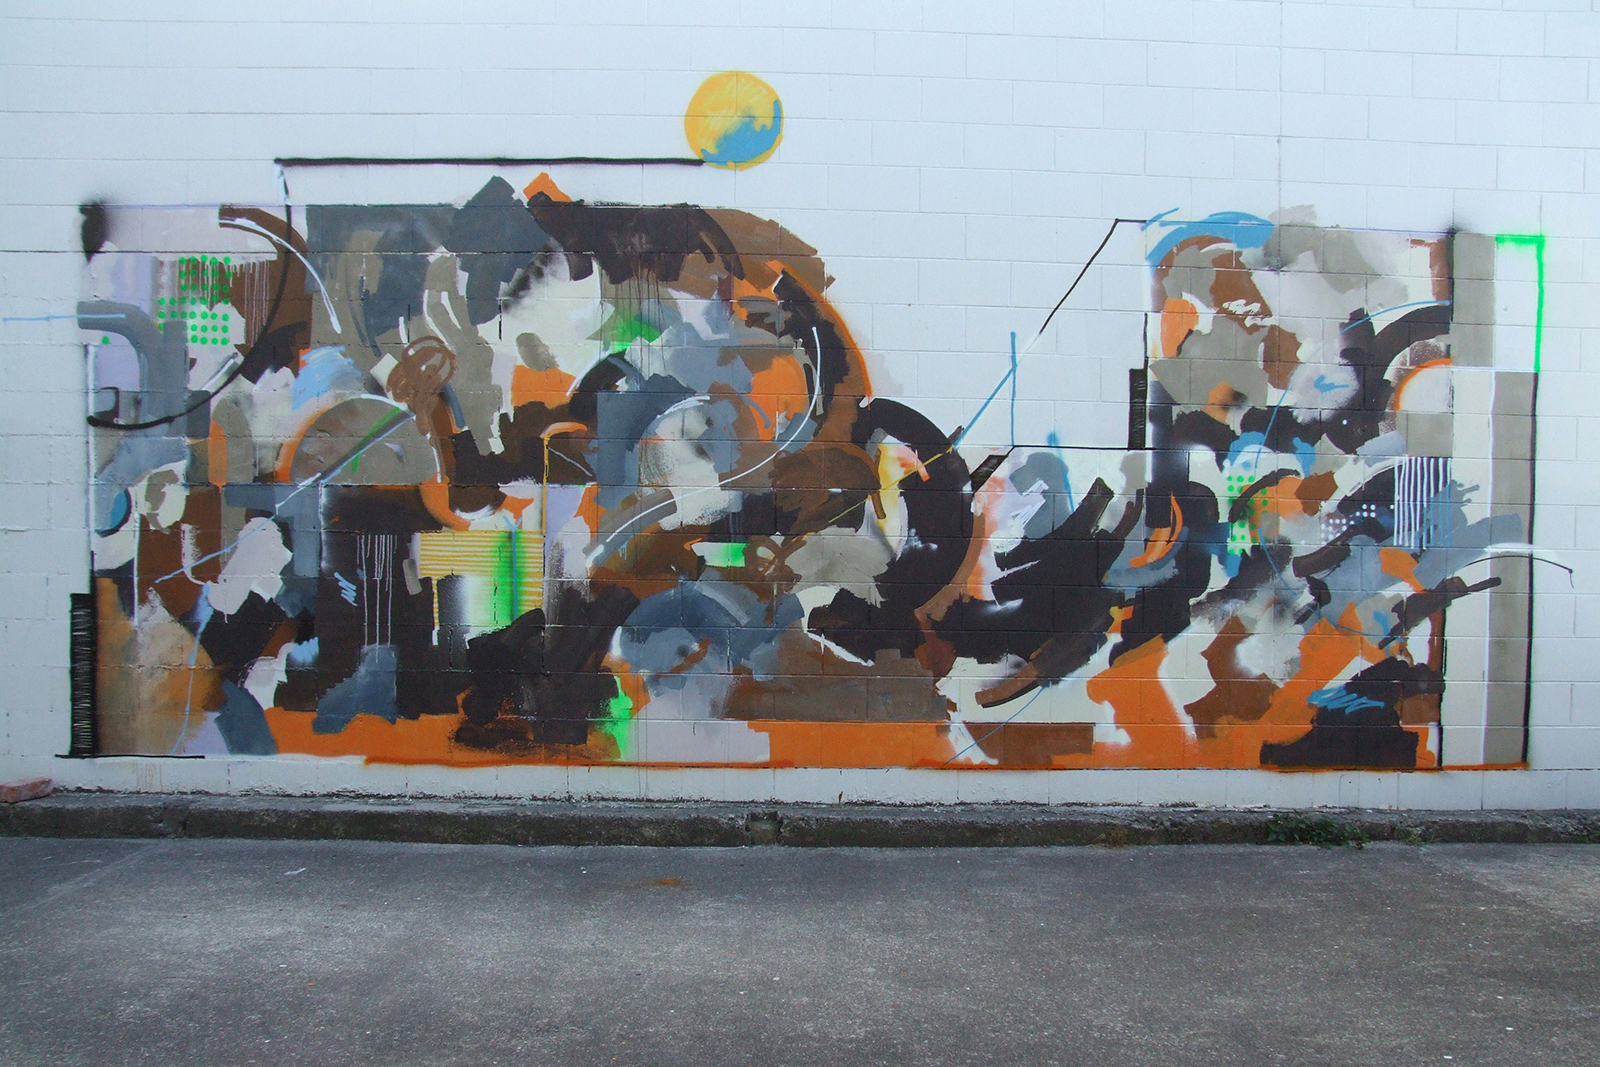 duncan-passmore-new-murals-in-wellington-new-zealand-01